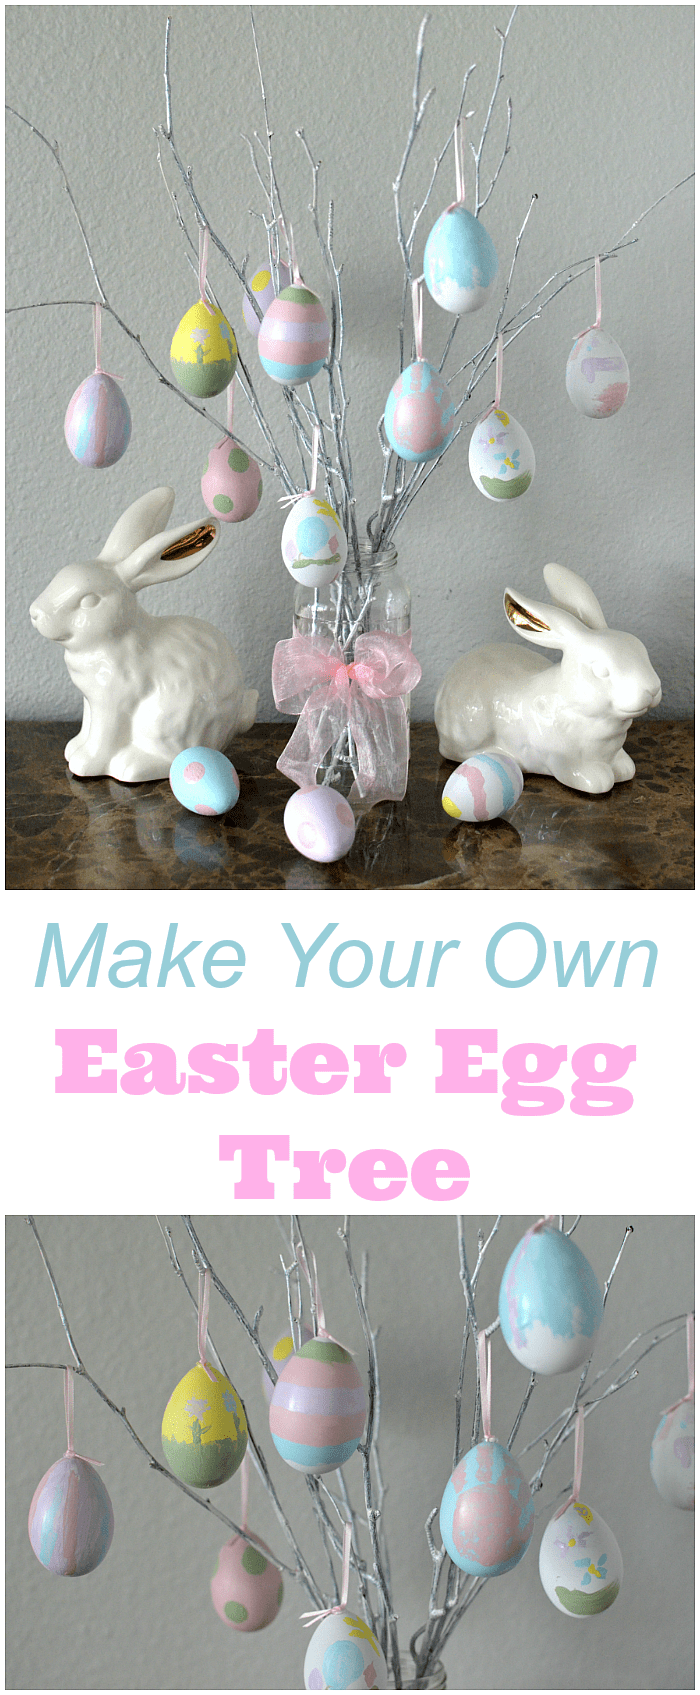 12 Diy Easter Tree Ideas How To Make Your Own Easter Egg Tree